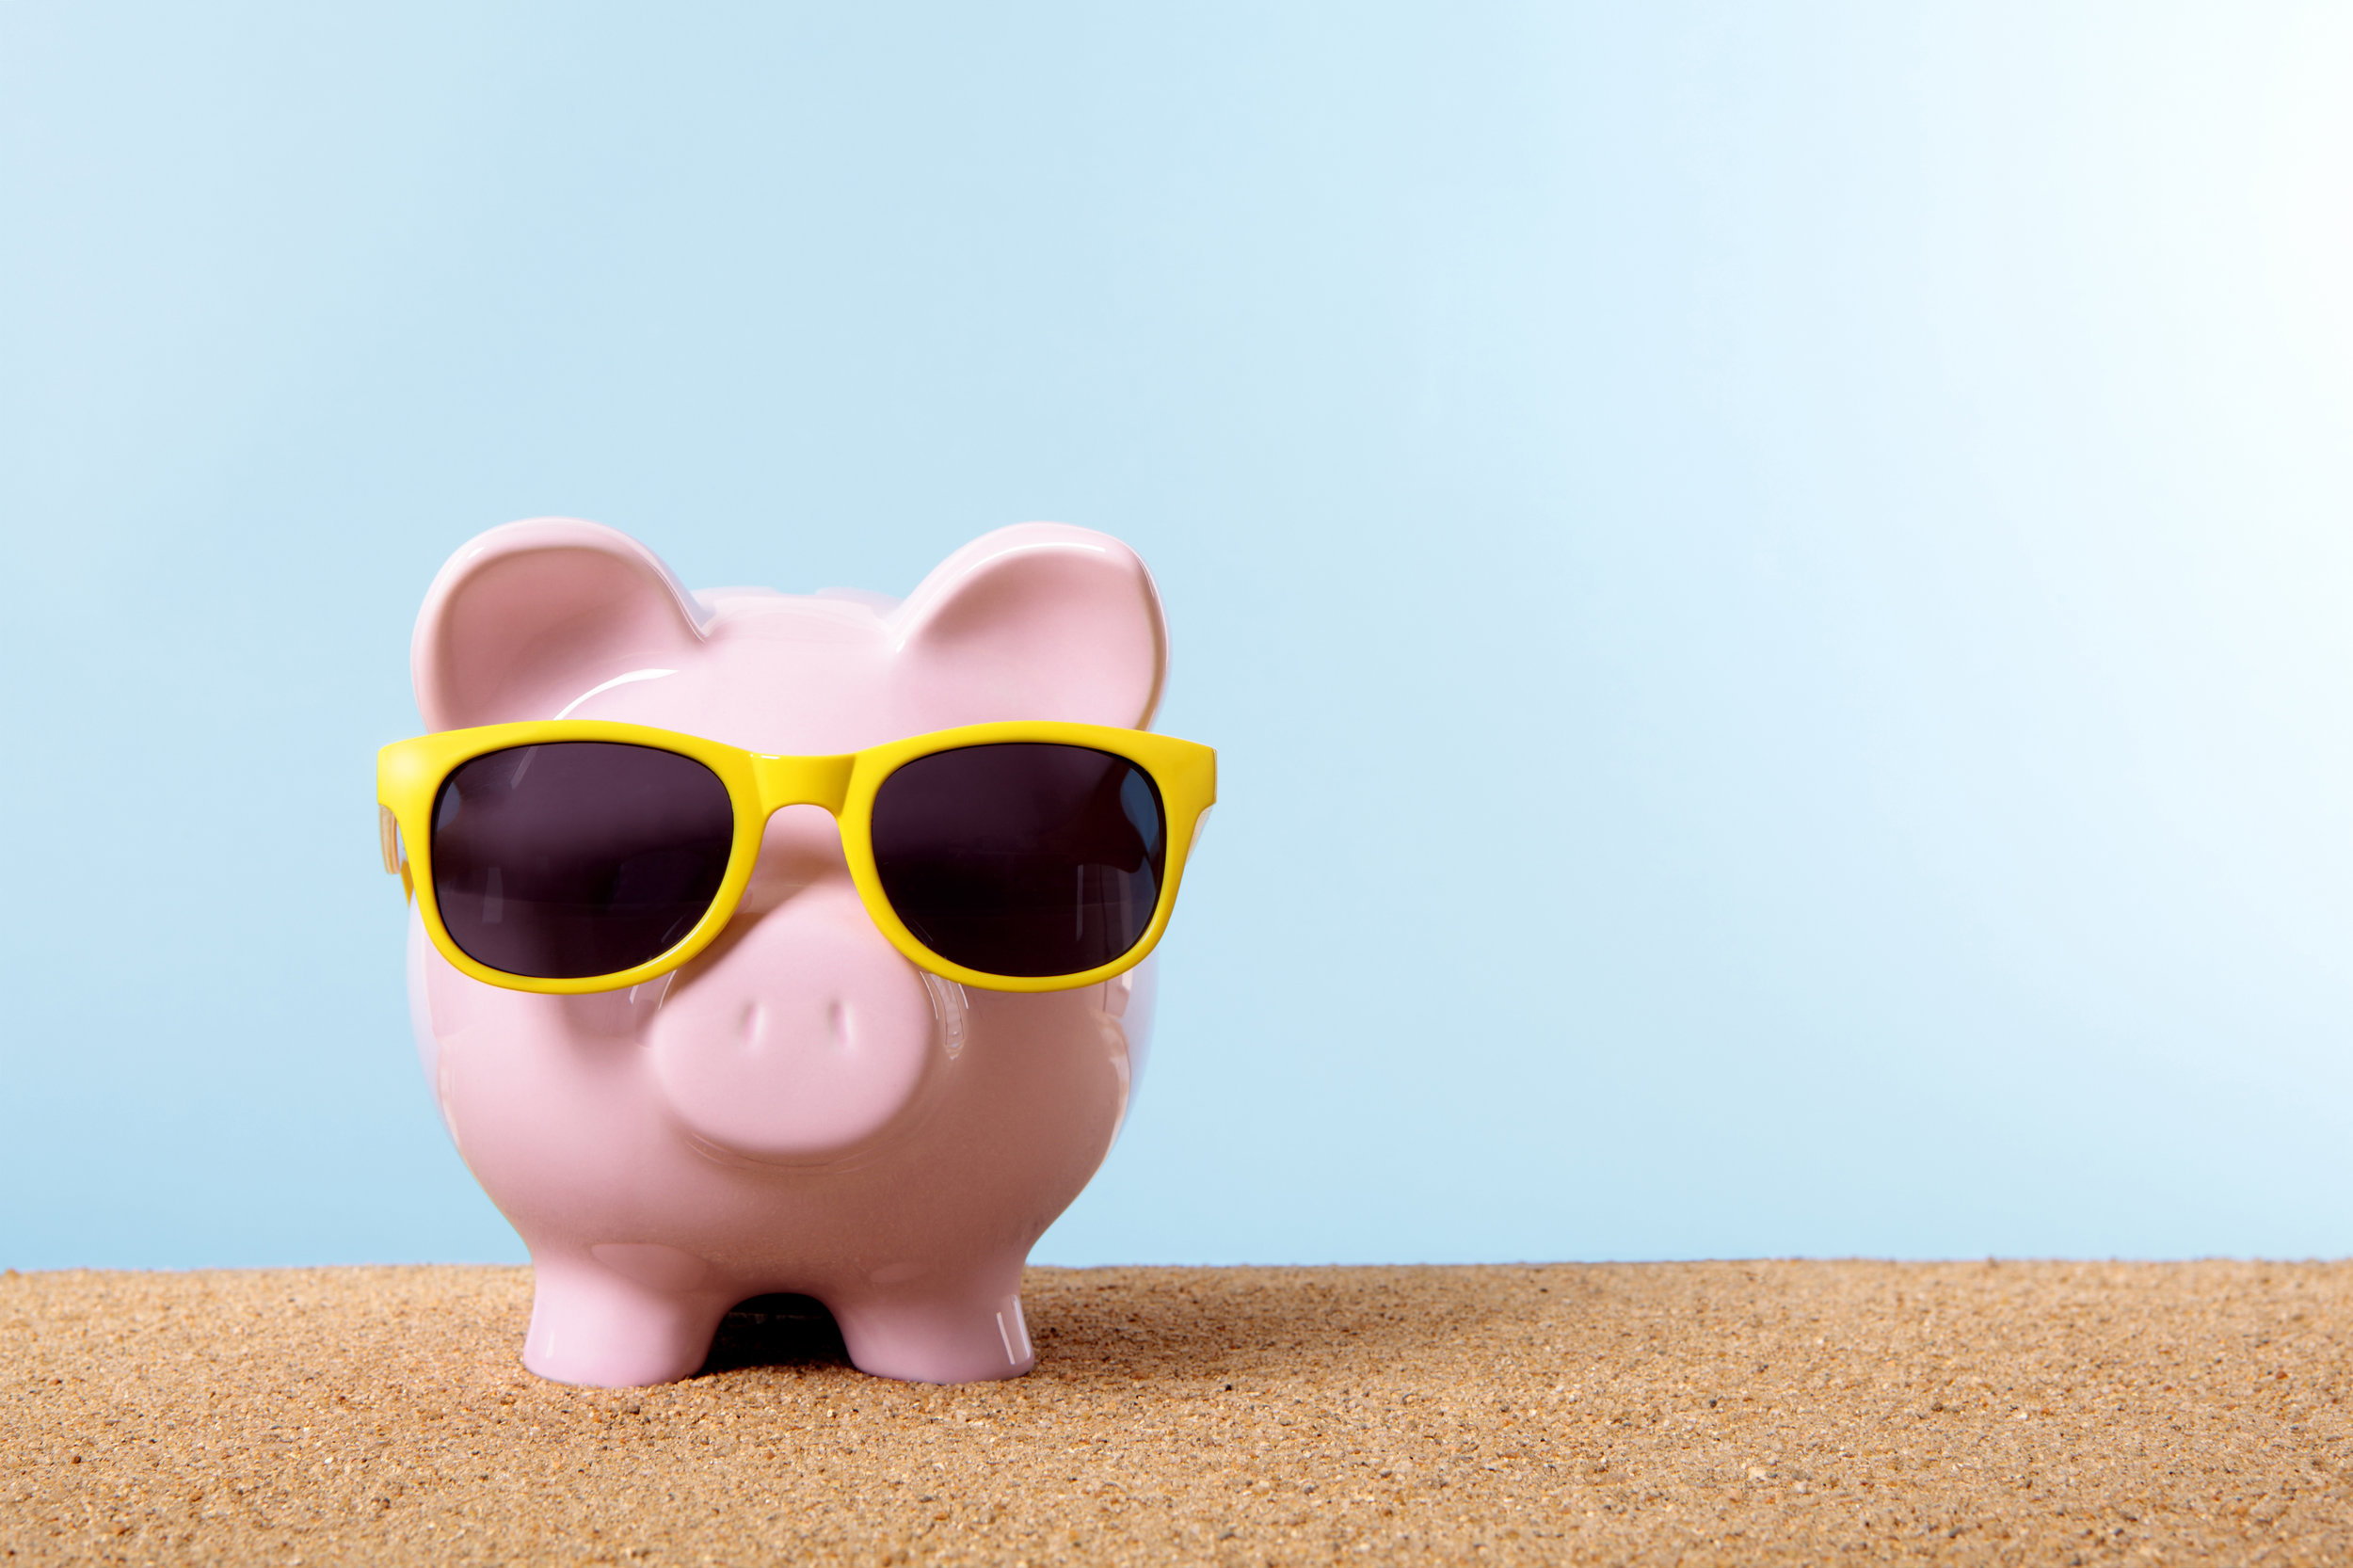 Single piggy bank yellow sunglasses with copyspace.jpg